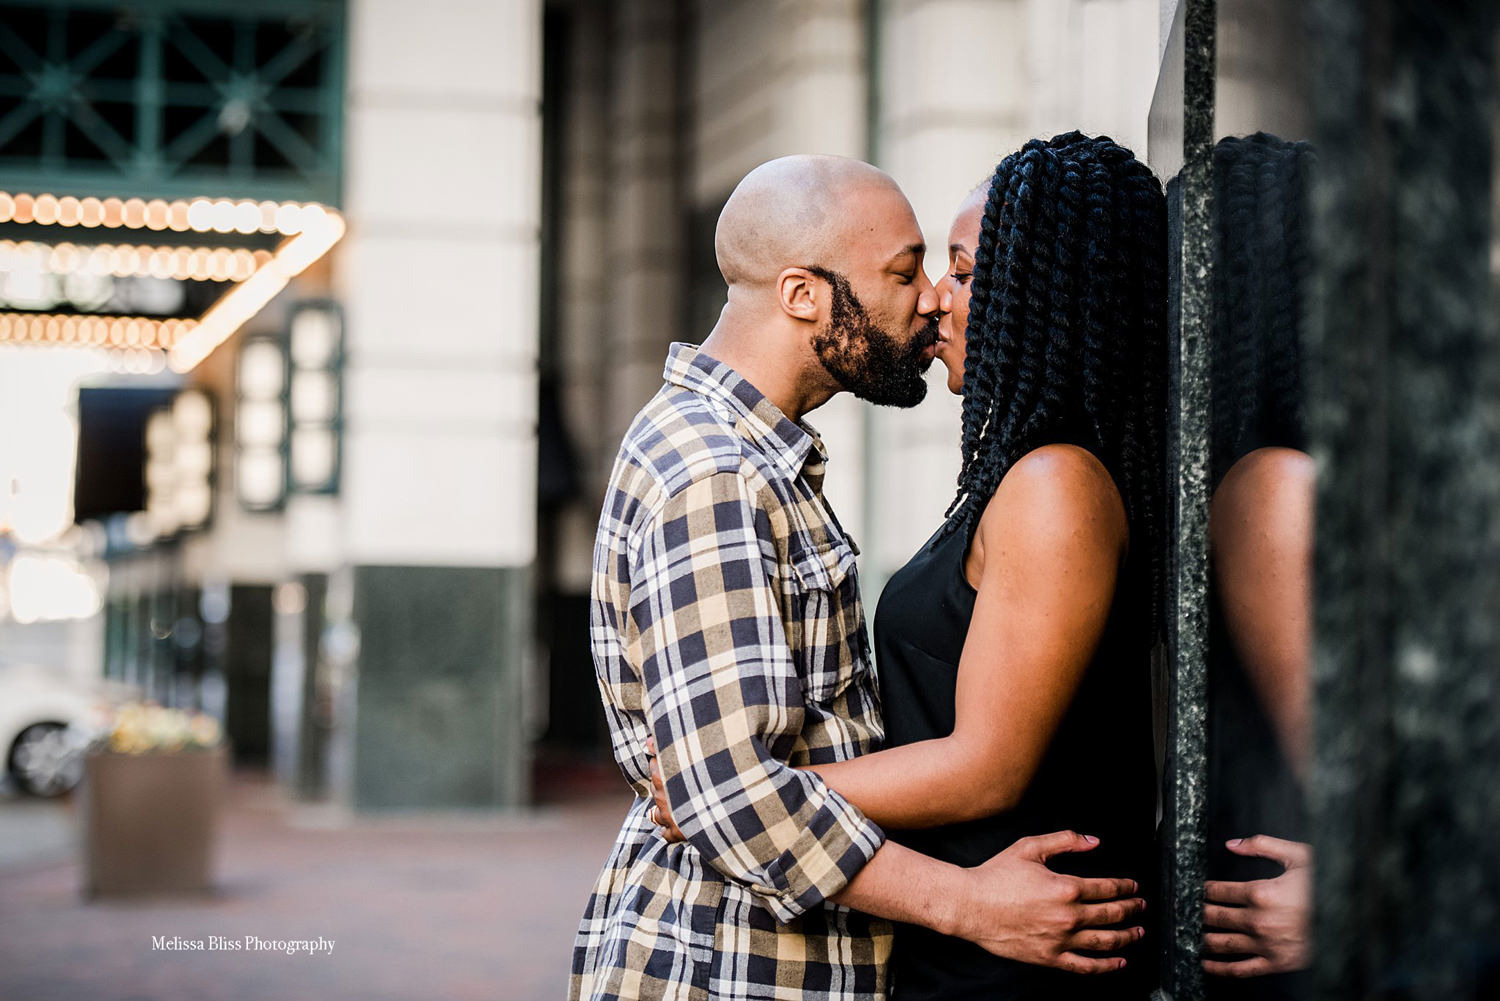 norfolk-engagement-photographer-melissa-bliss-photography-photos-downtown.jpg